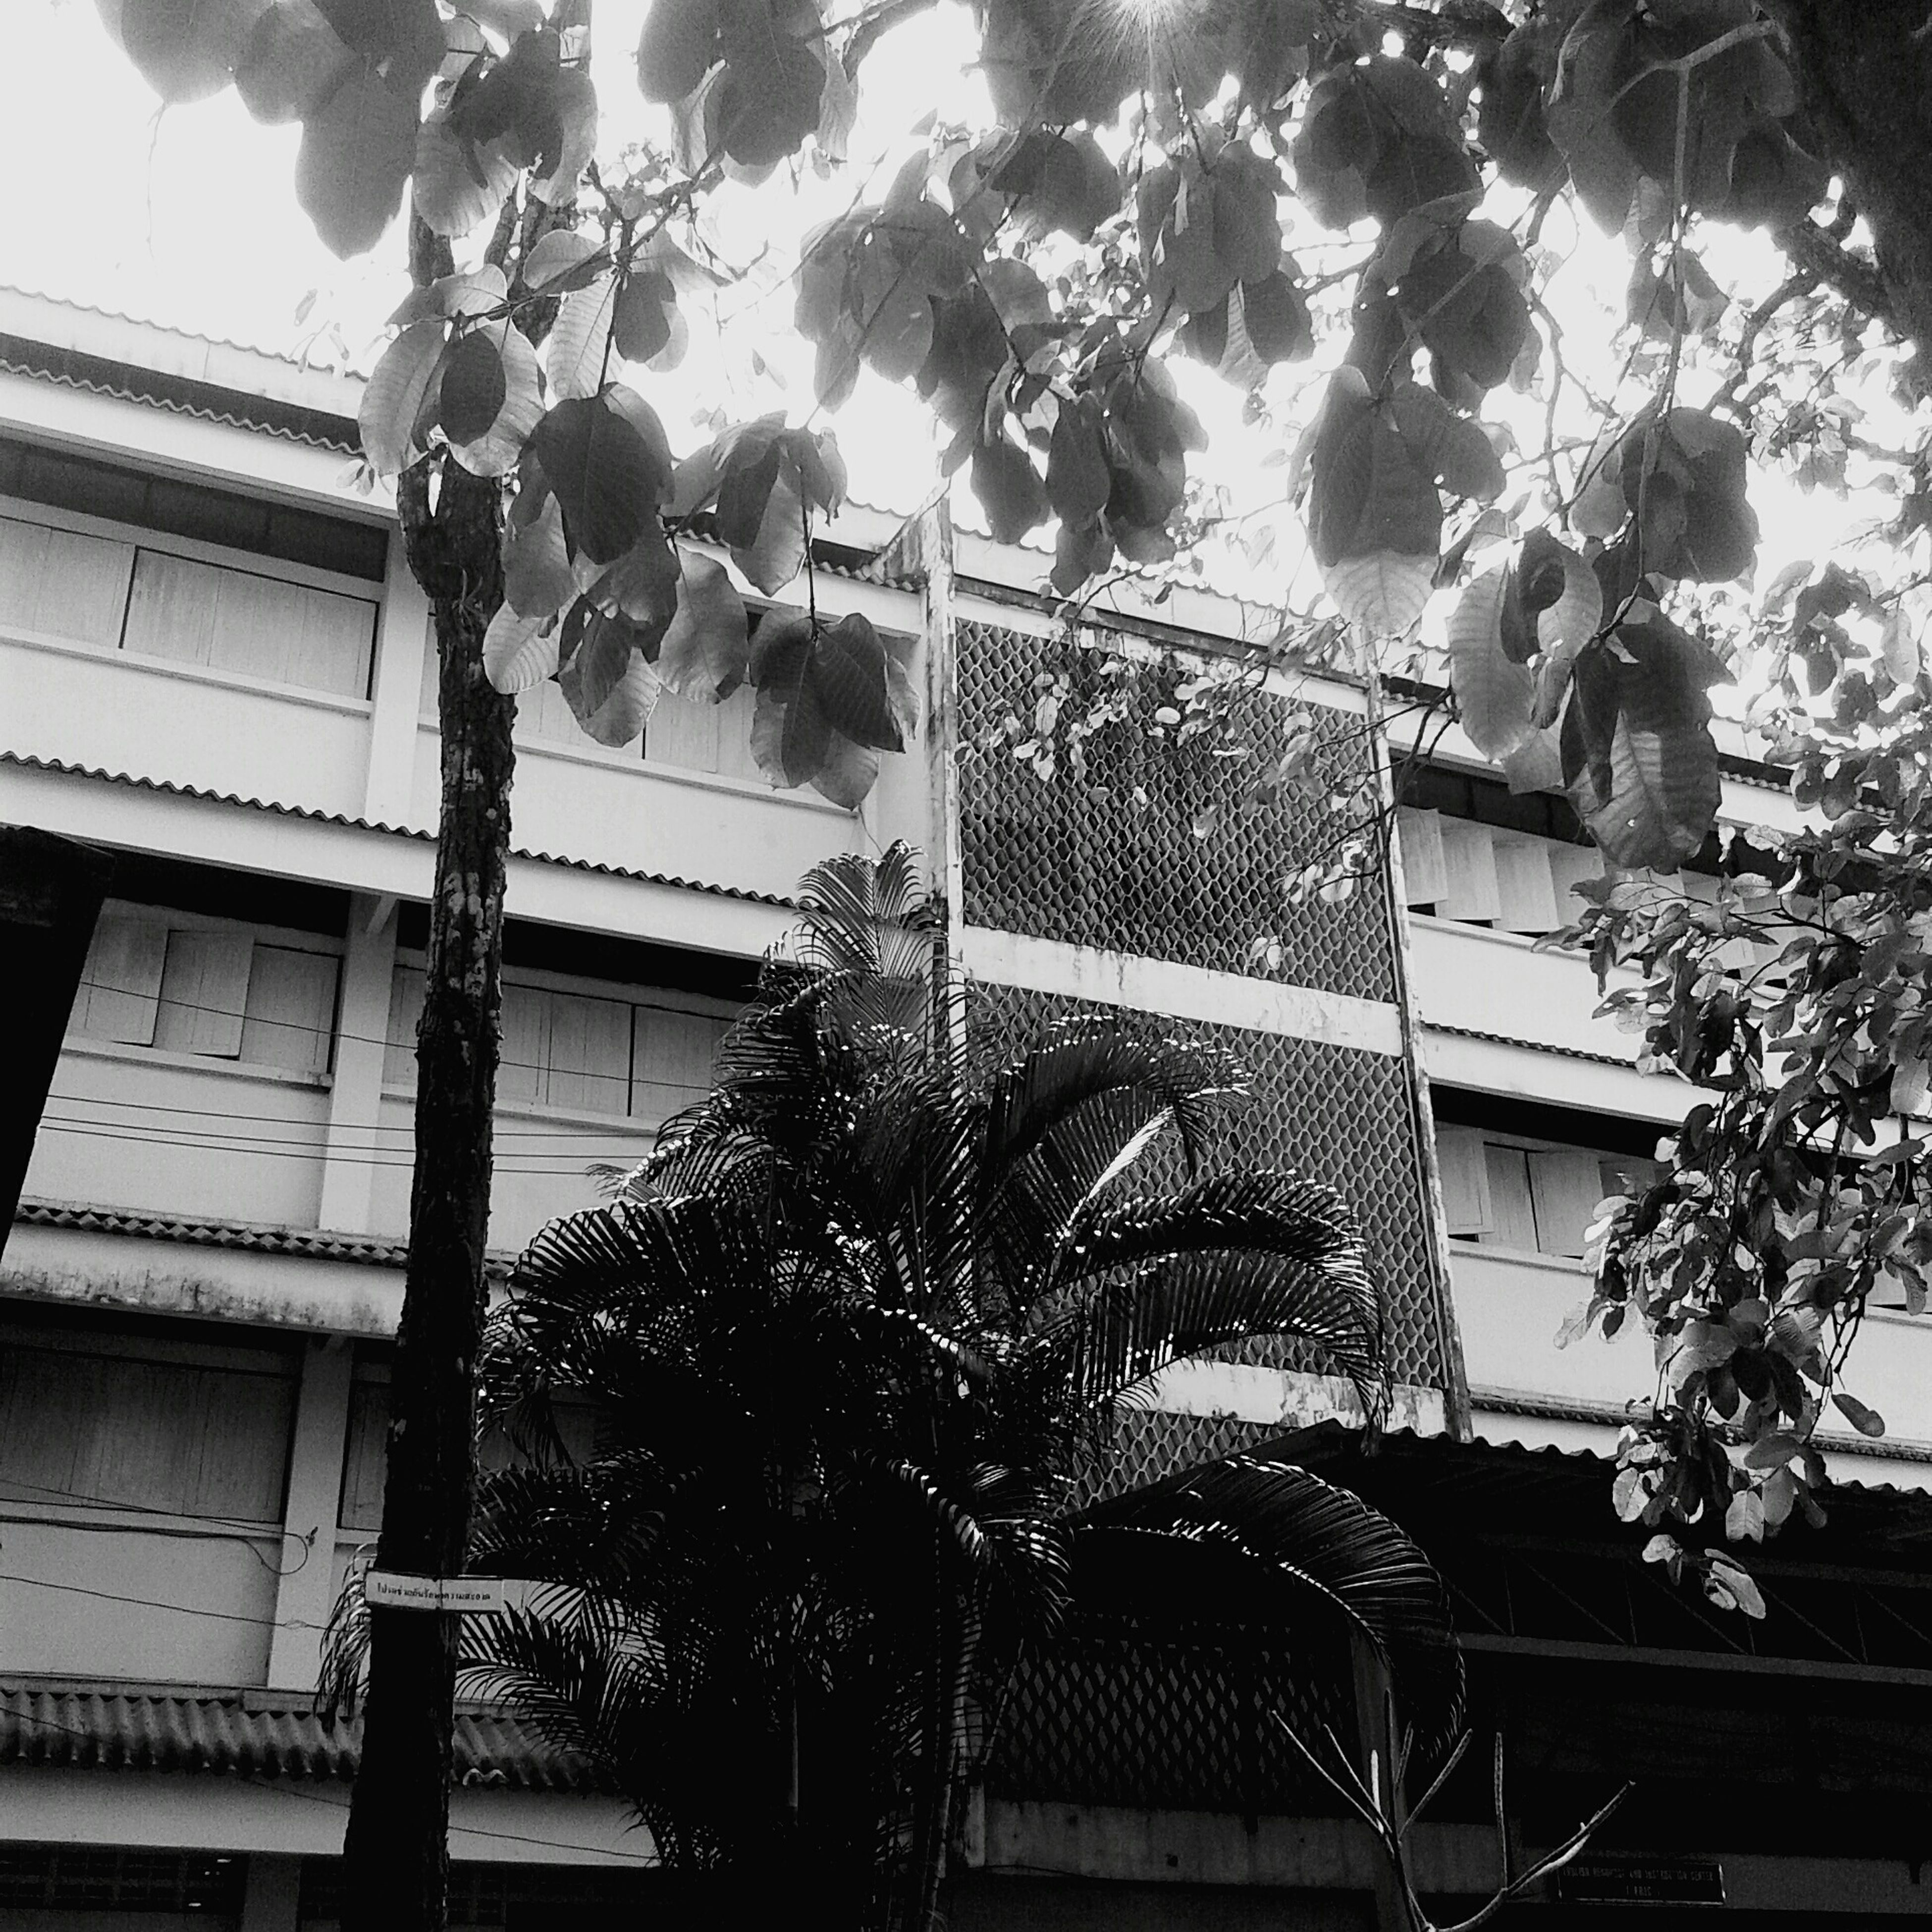 architecture, built structure, low angle view, building exterior, tree, window, branch, residential building, building, growth, house, residential structure, sky, day, balcony, glass - material, no people, outdoors, street light, city